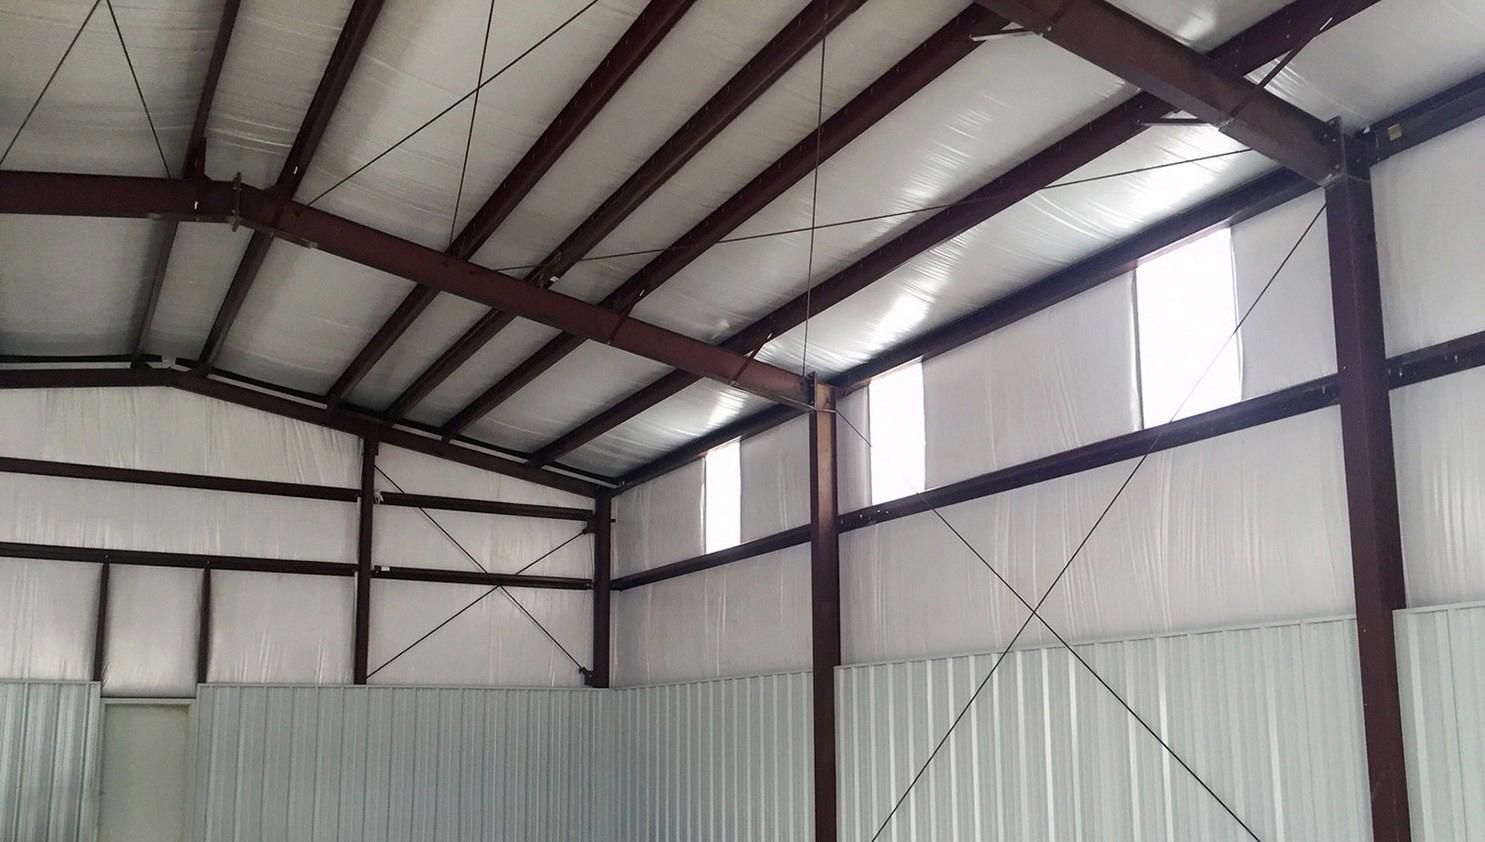 See these metal buildings with carport attachments.